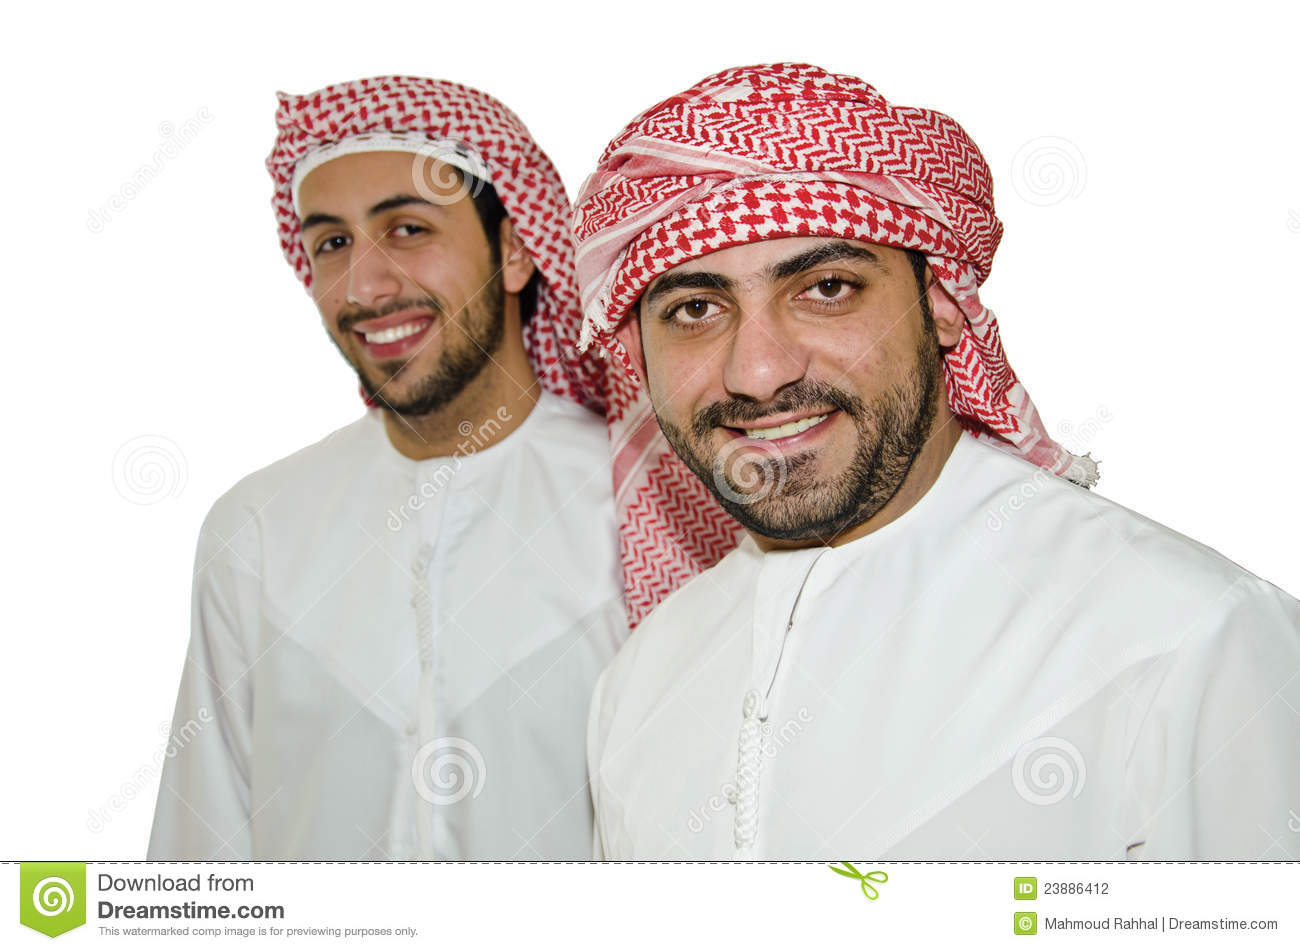 allenton middle eastern single men The middle east needs to confront the issues of sexual freedom, shame, and honor and end what she calls an alliance of oppression between the state and the street.